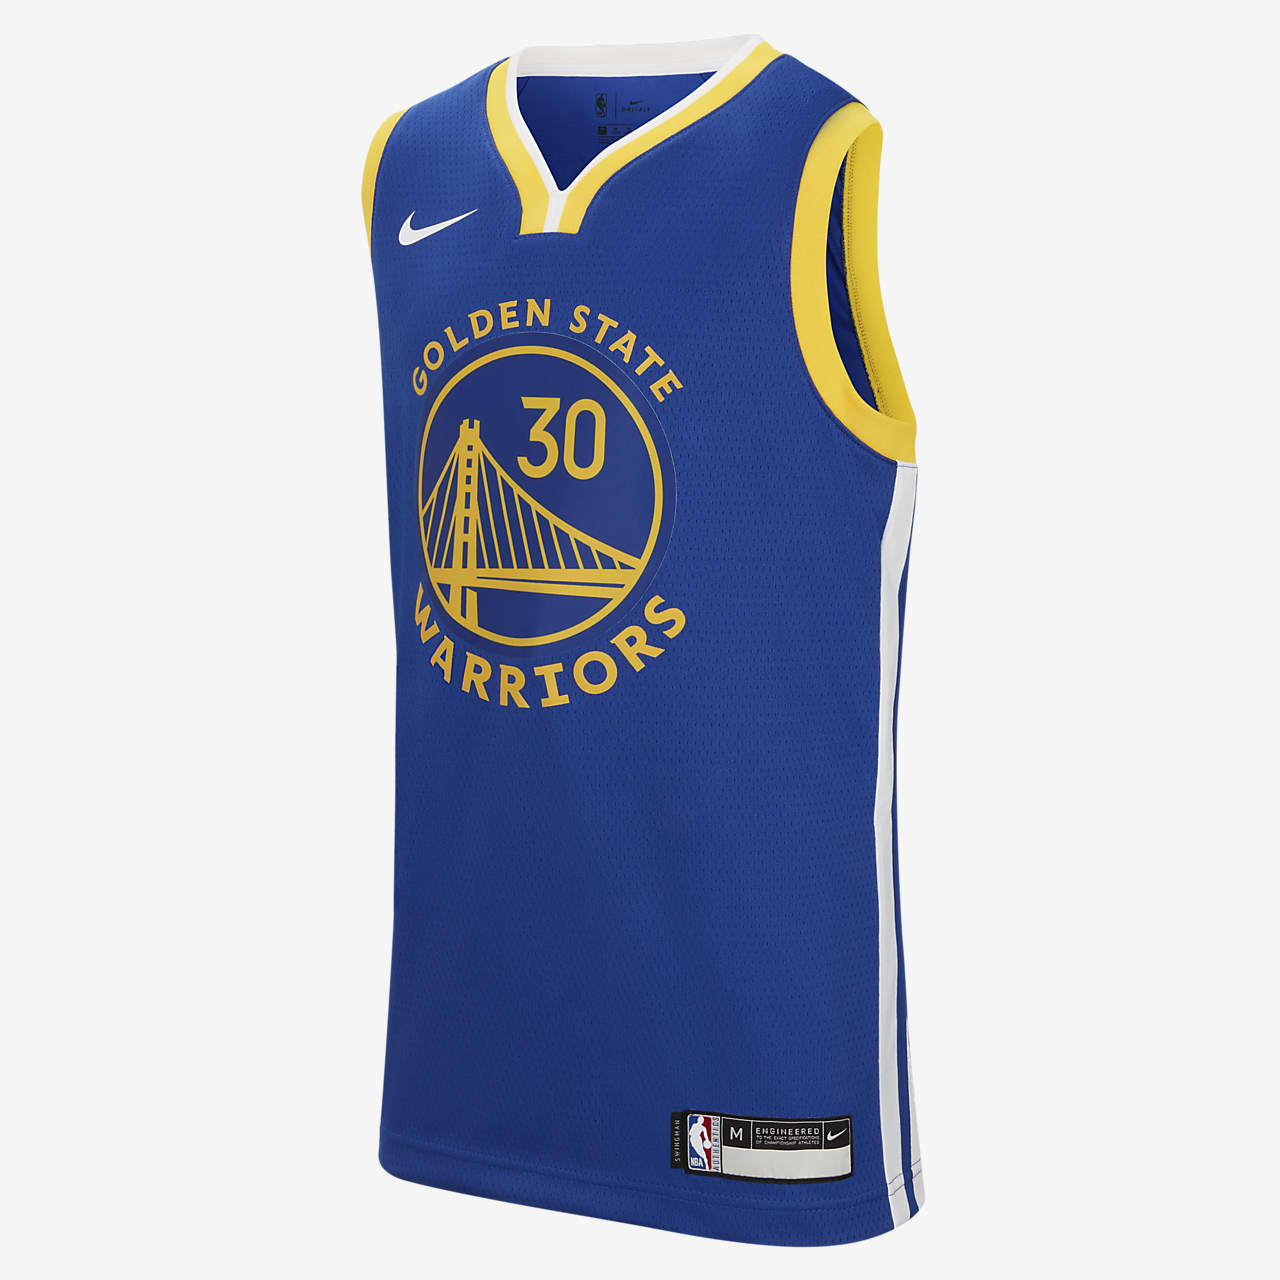 金州勇士队 Icon Edition Nike NBA Swingman Jersey 大童(男孩)球衣